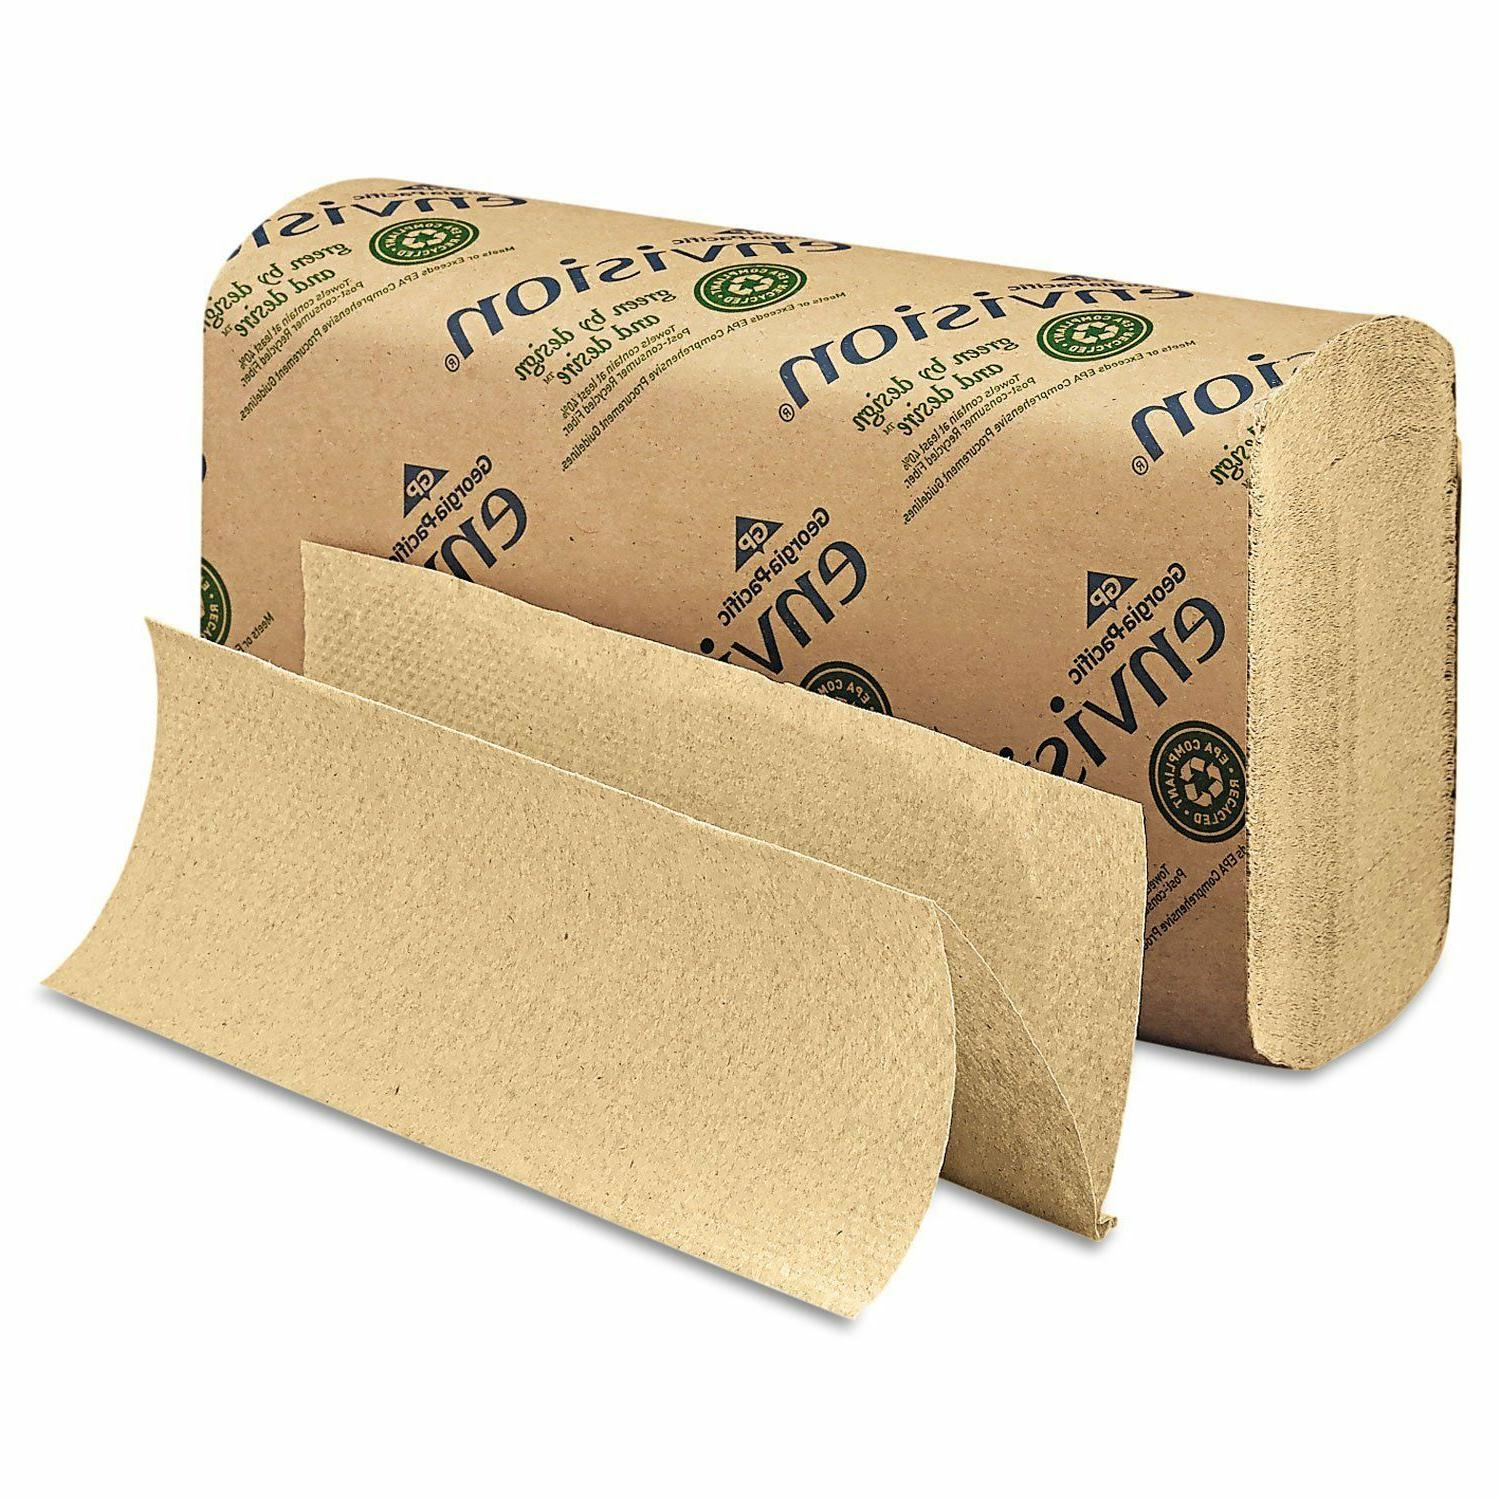 Georgia Pacific Envision MultiFold Paper Towel, 250 CT. Pack